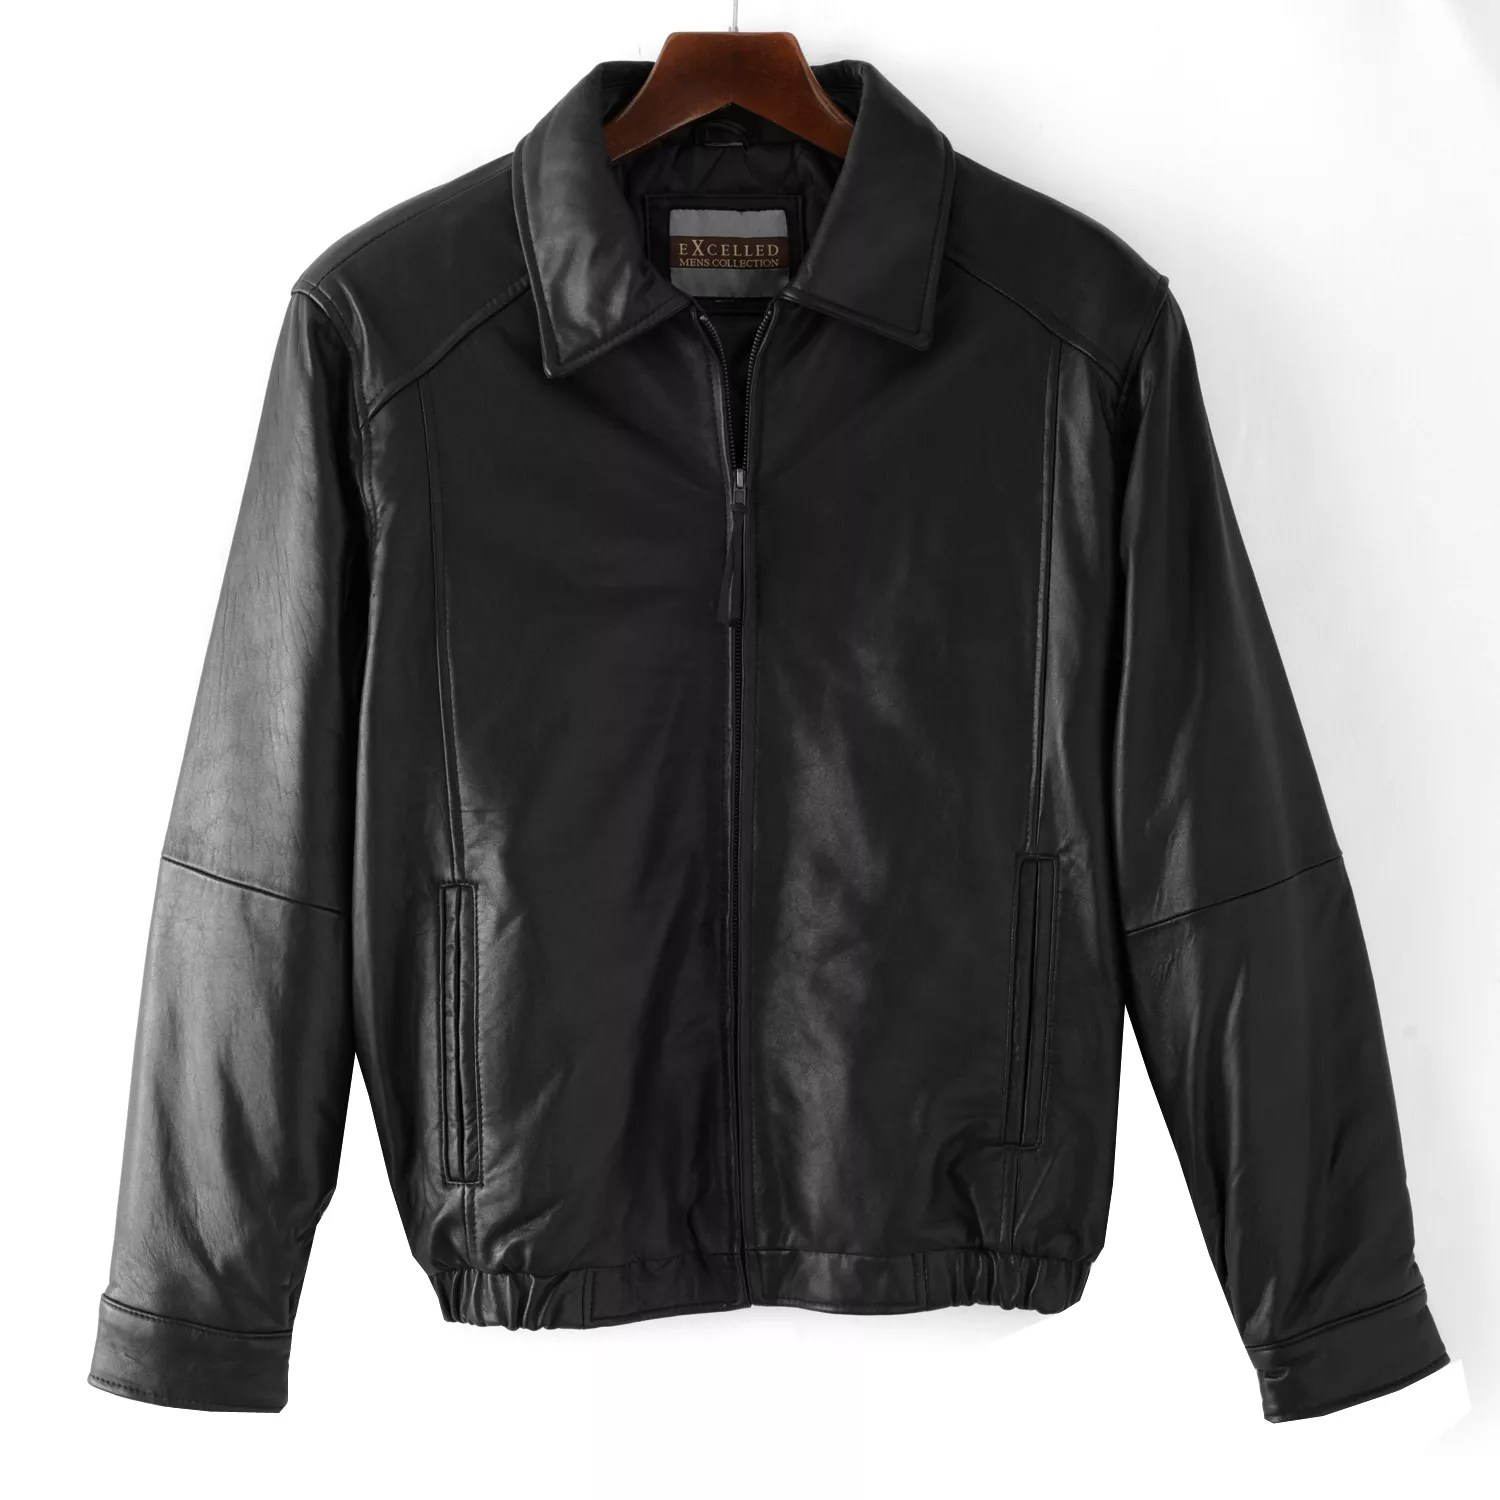 85fcbdd13 Top 10 Best Excelled Leather Bomber Jacket In 2019 Reviews